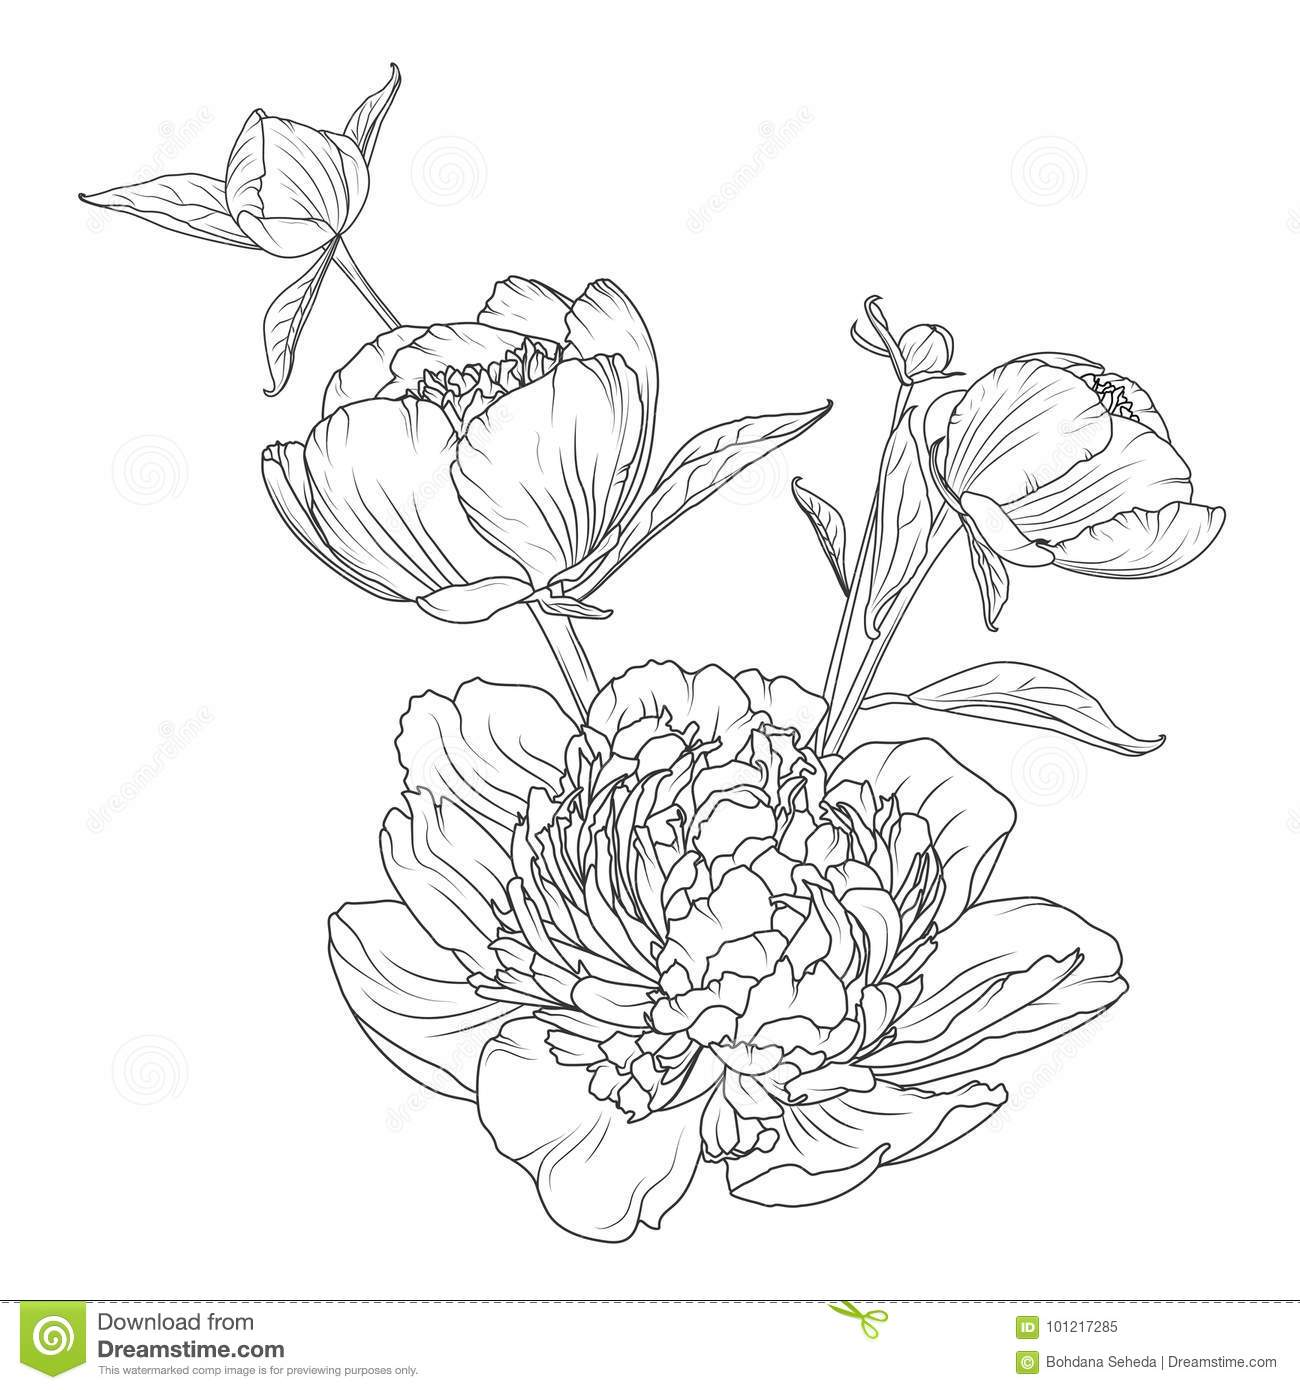 Peony rose flowers bouquet composition detailed realistic outline sketch drawing black line art on white background closeup macro view